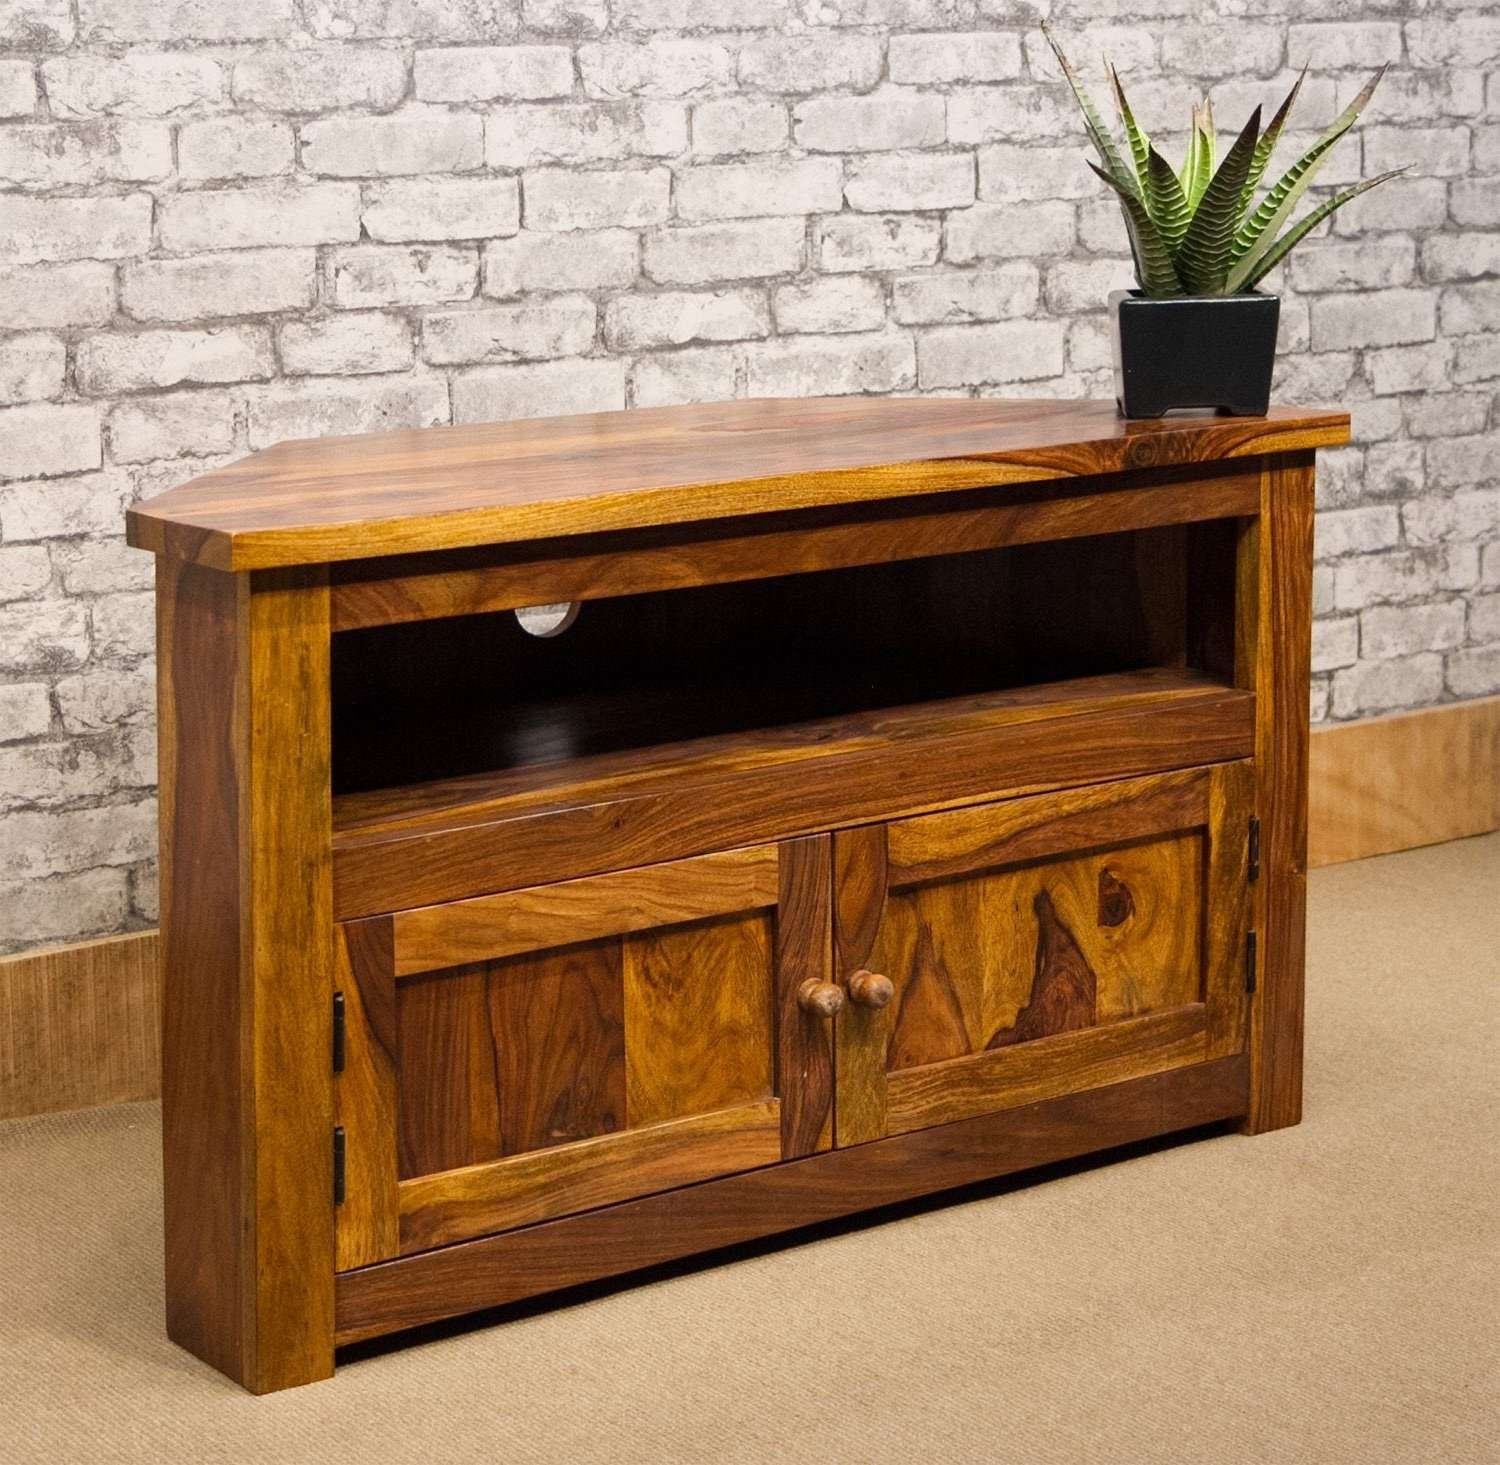 Ibf 013 100Cm Corner Tv Stand With Regard To 100Cm Tv Stands (Gallery 2 of 15)